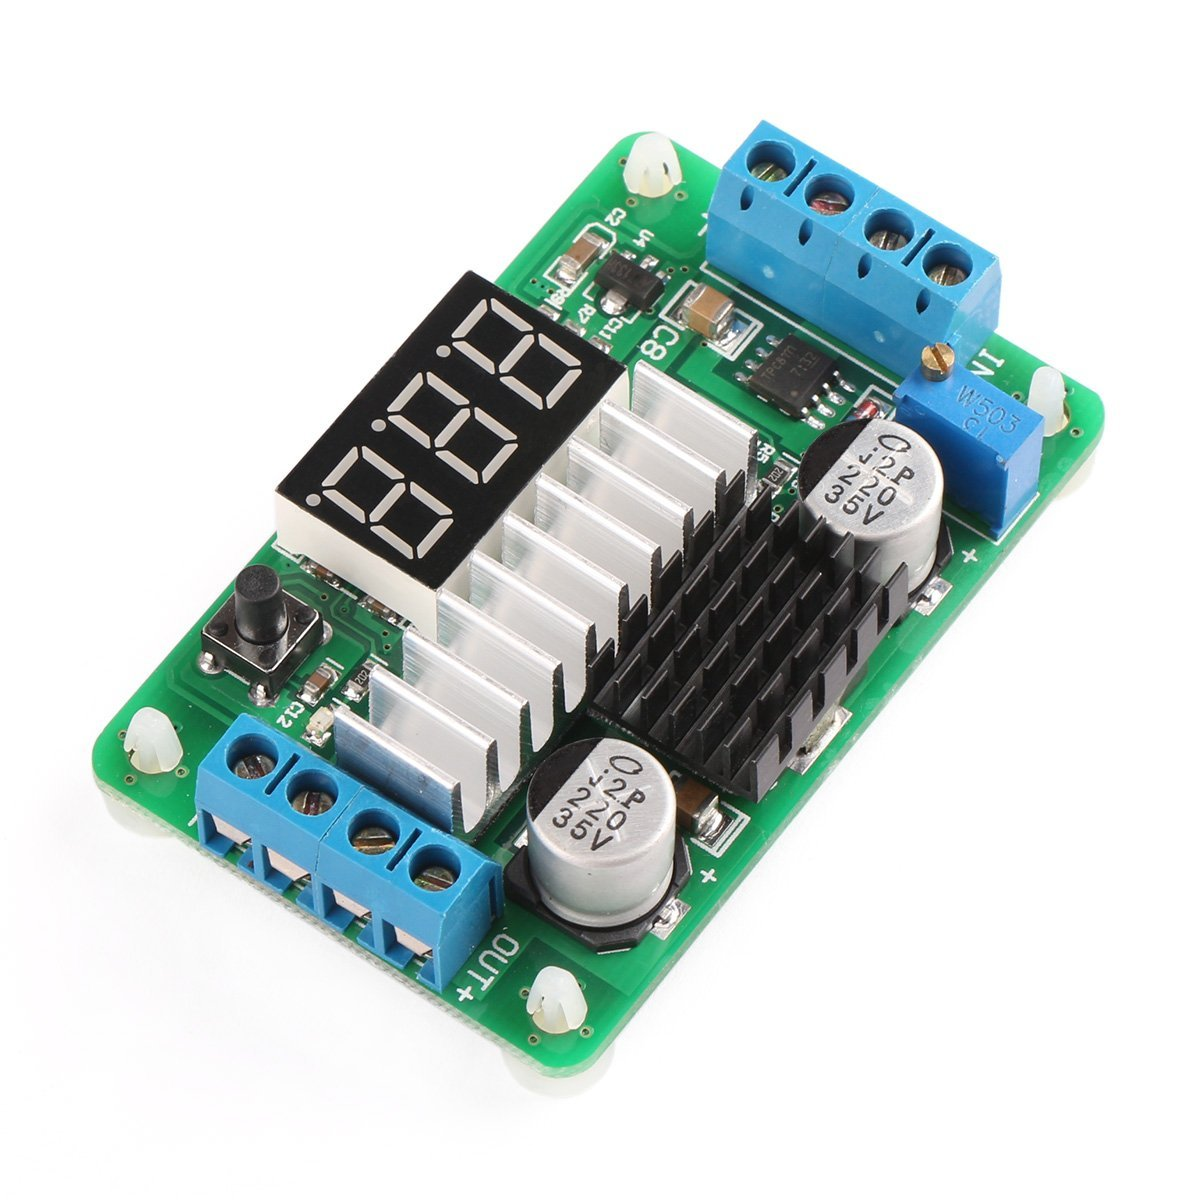 3.5V-30V DC Boost Converter Power Transformer Voltage Regulator 5V/12V Step Up Volt Modu ...